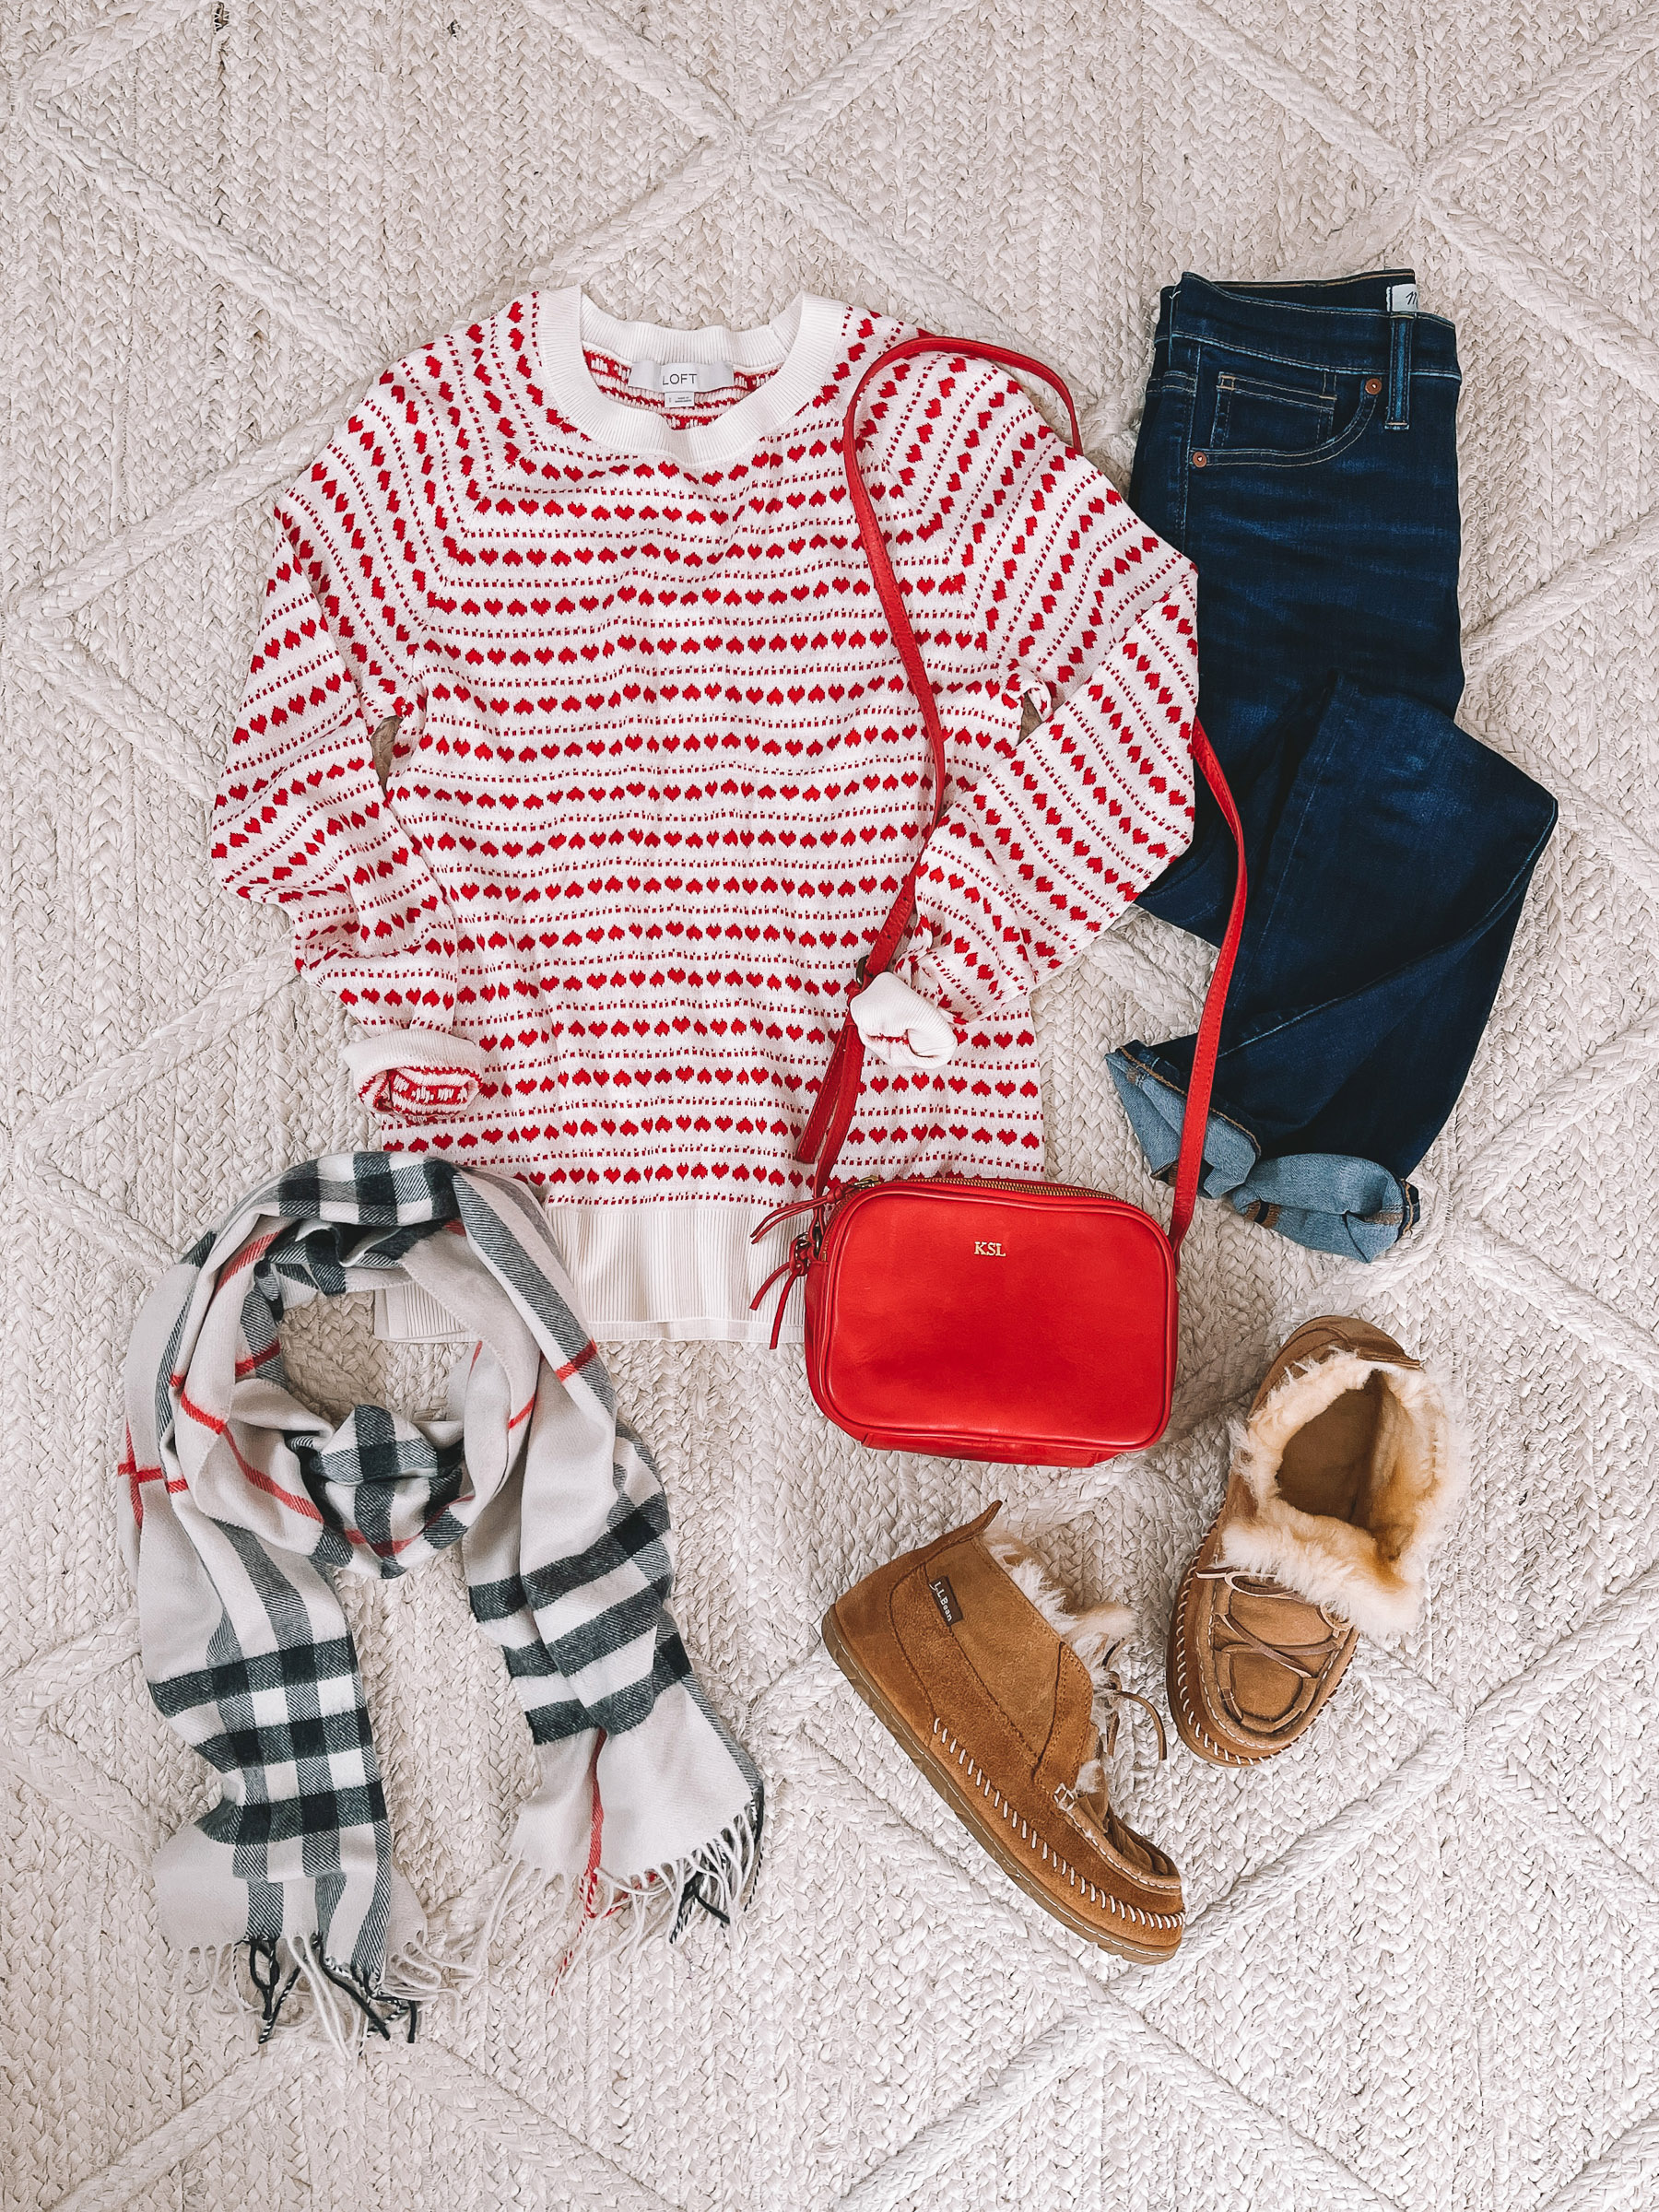 LOFT Heart Sweaters: Red Hearts and Stripes   10 Preppy Valentines Day Outfits